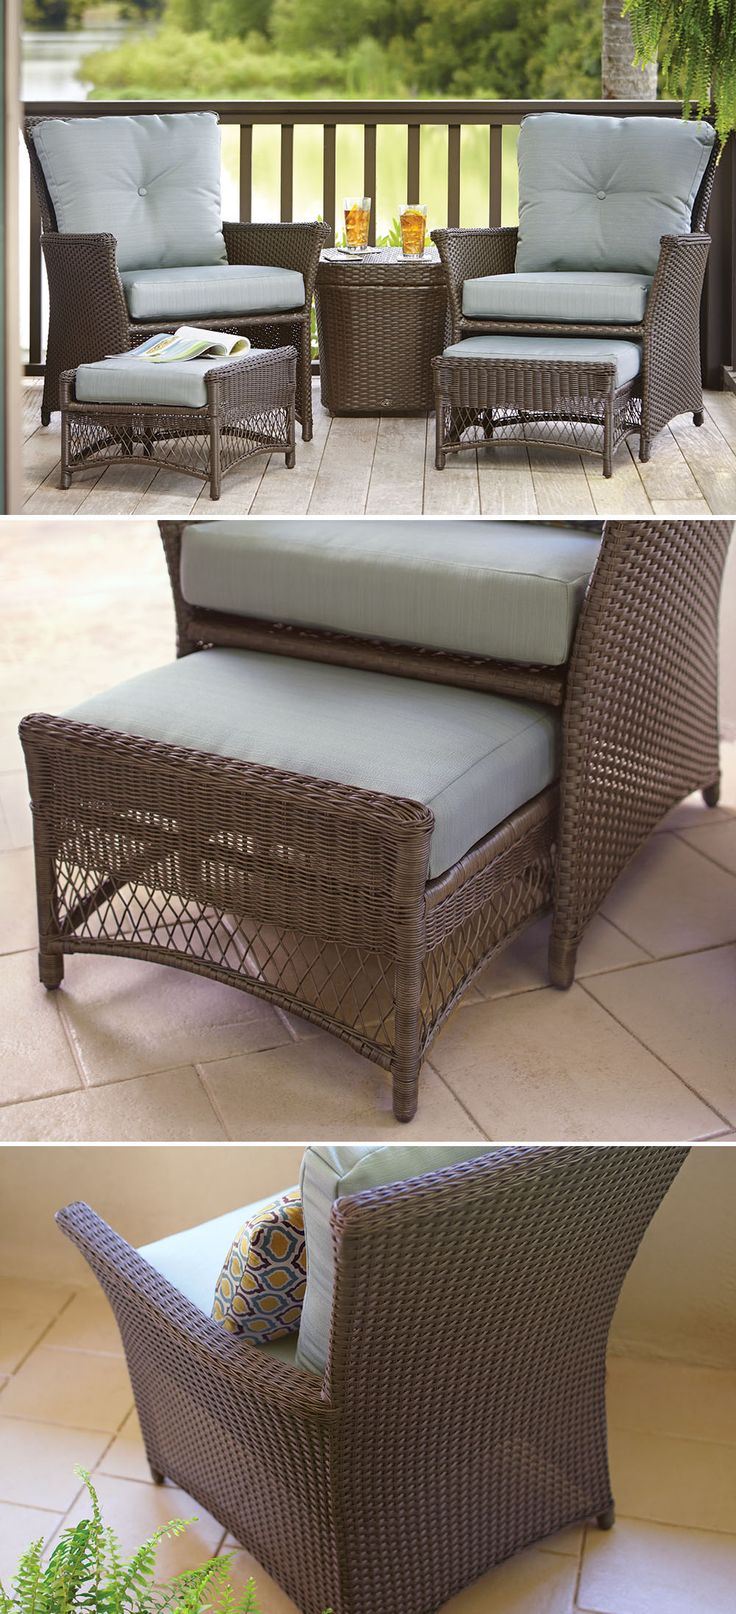 Balcony furniture small - Best 25 Small Patio Decorating Ideas On Pinterest Cinder Blocks Small Porch Decorating And Small Balcony Garden